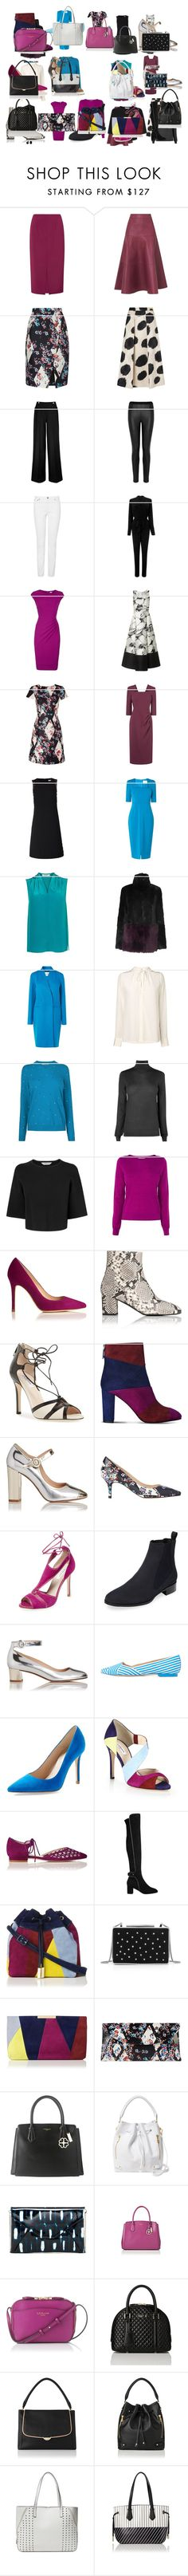 """Untitled #3324"" by luciana-boneca on Polyvore featuring L.K.Bennett, women's clothing, women's fashion, women, female, woman, misses and juniors"